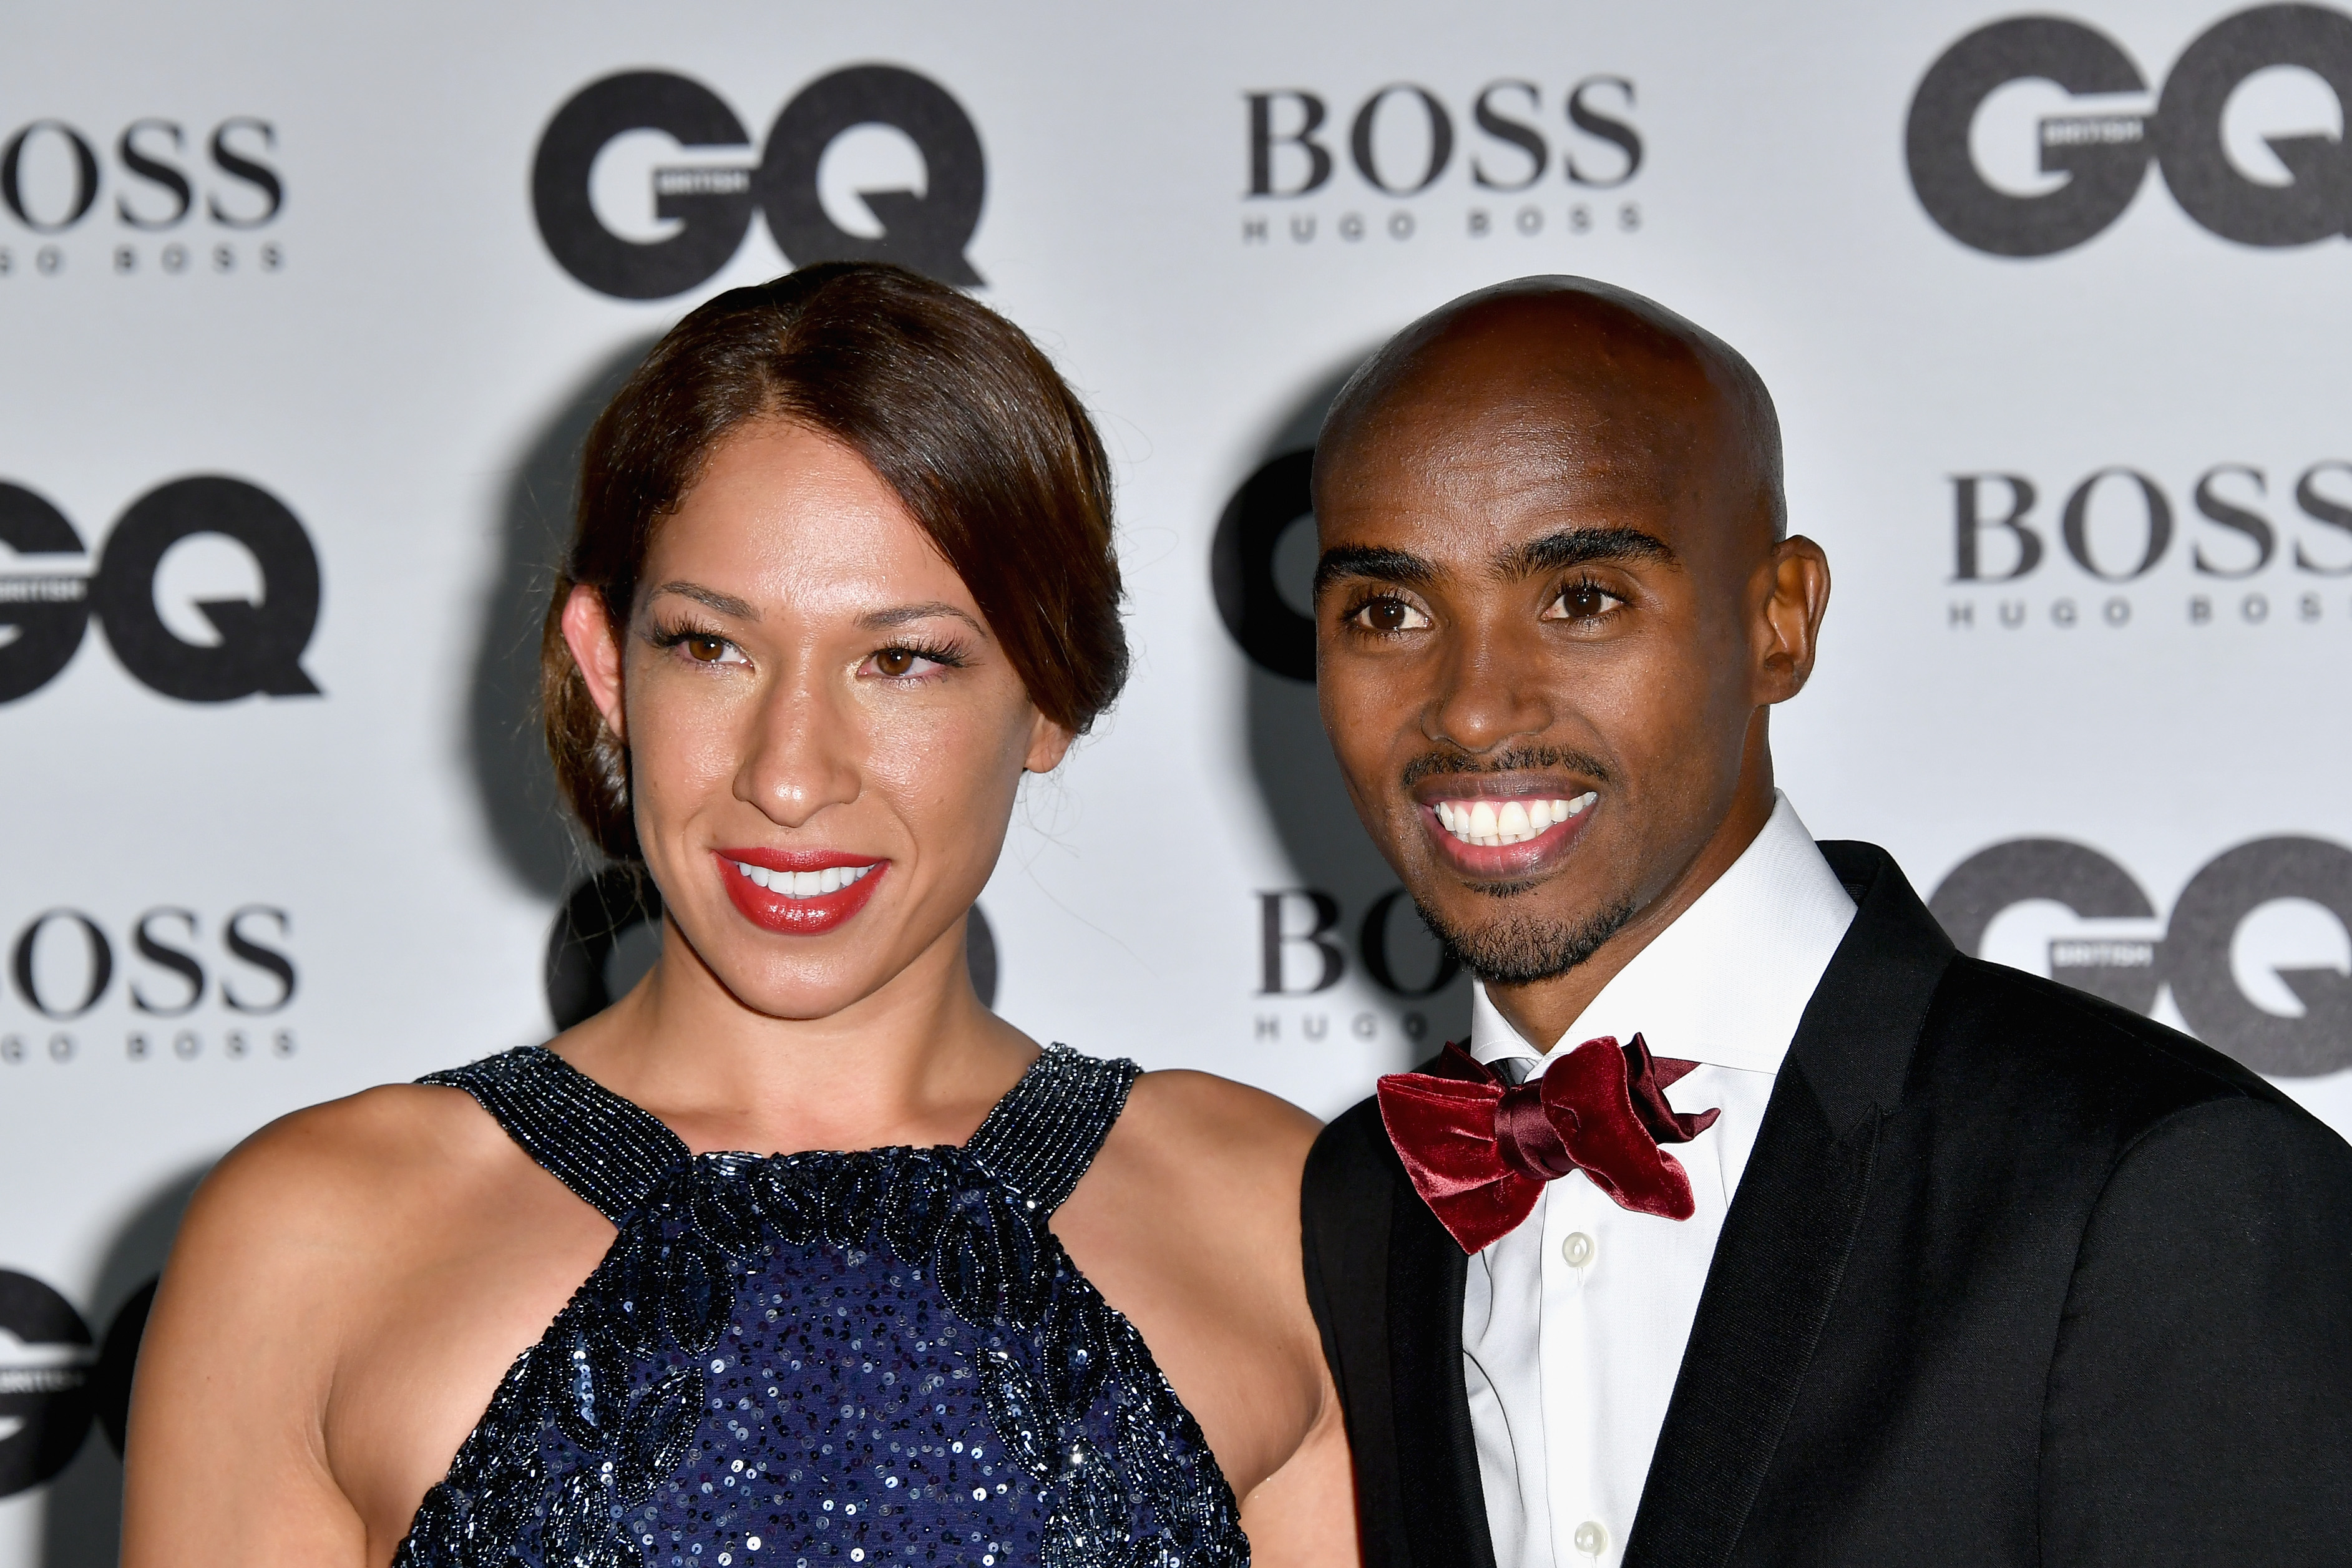 Mo Farah Suffered Shocking Racist Abuse On Flight Home From Rio mo1